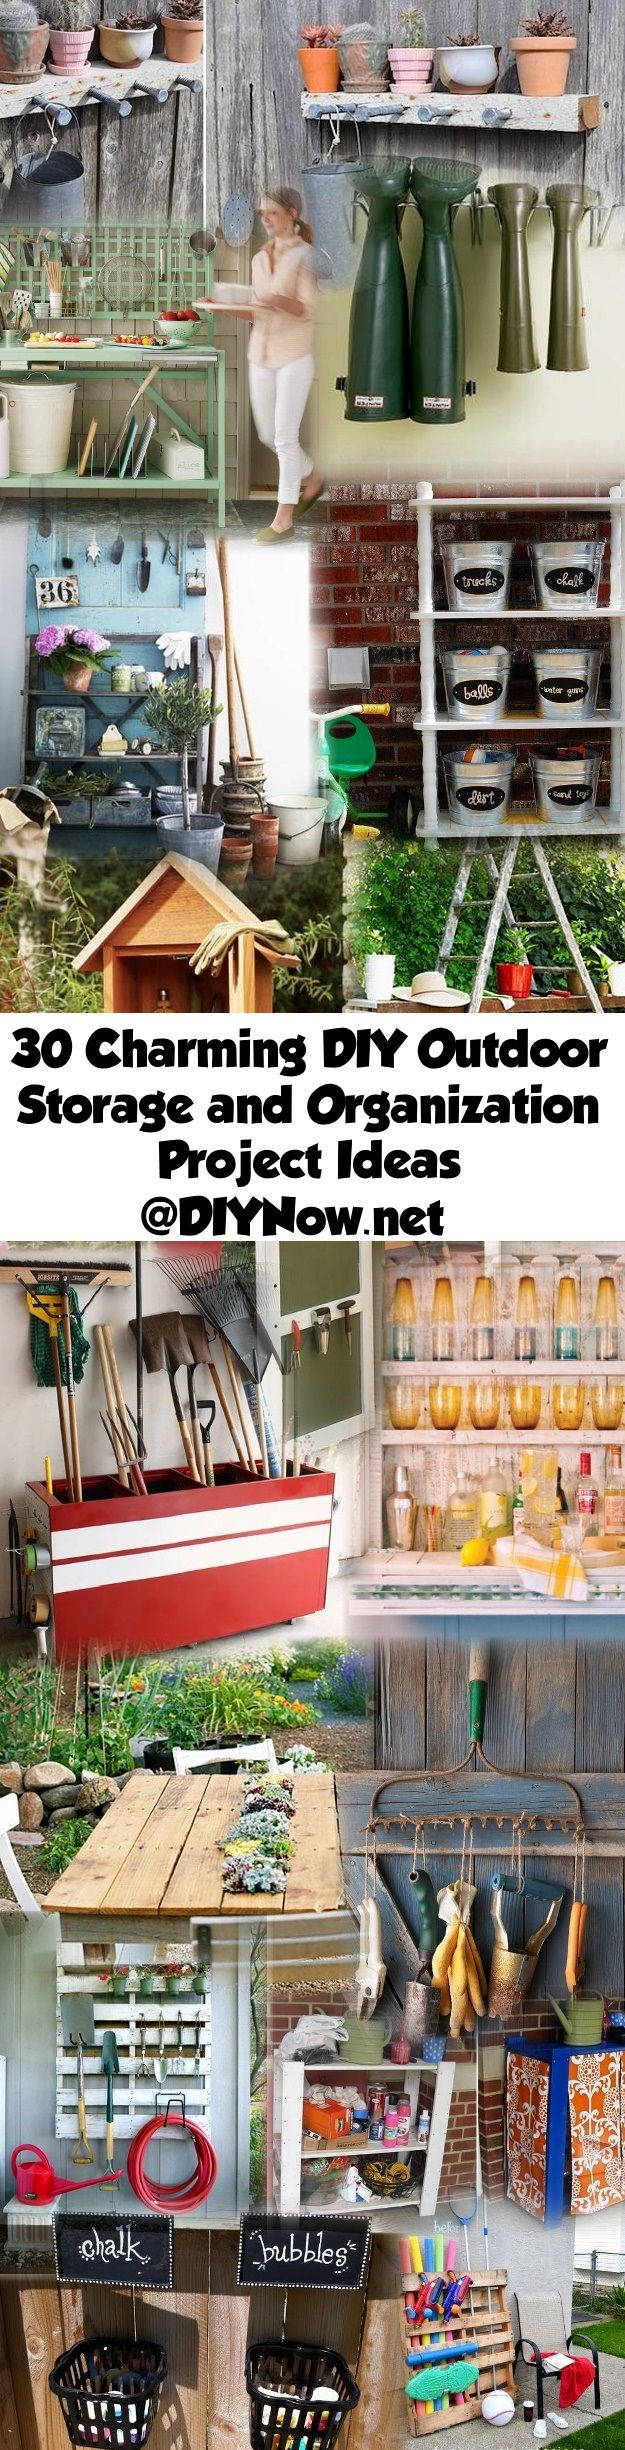 30 Charming DIY Outdoor Storage and Organization Project Ideas